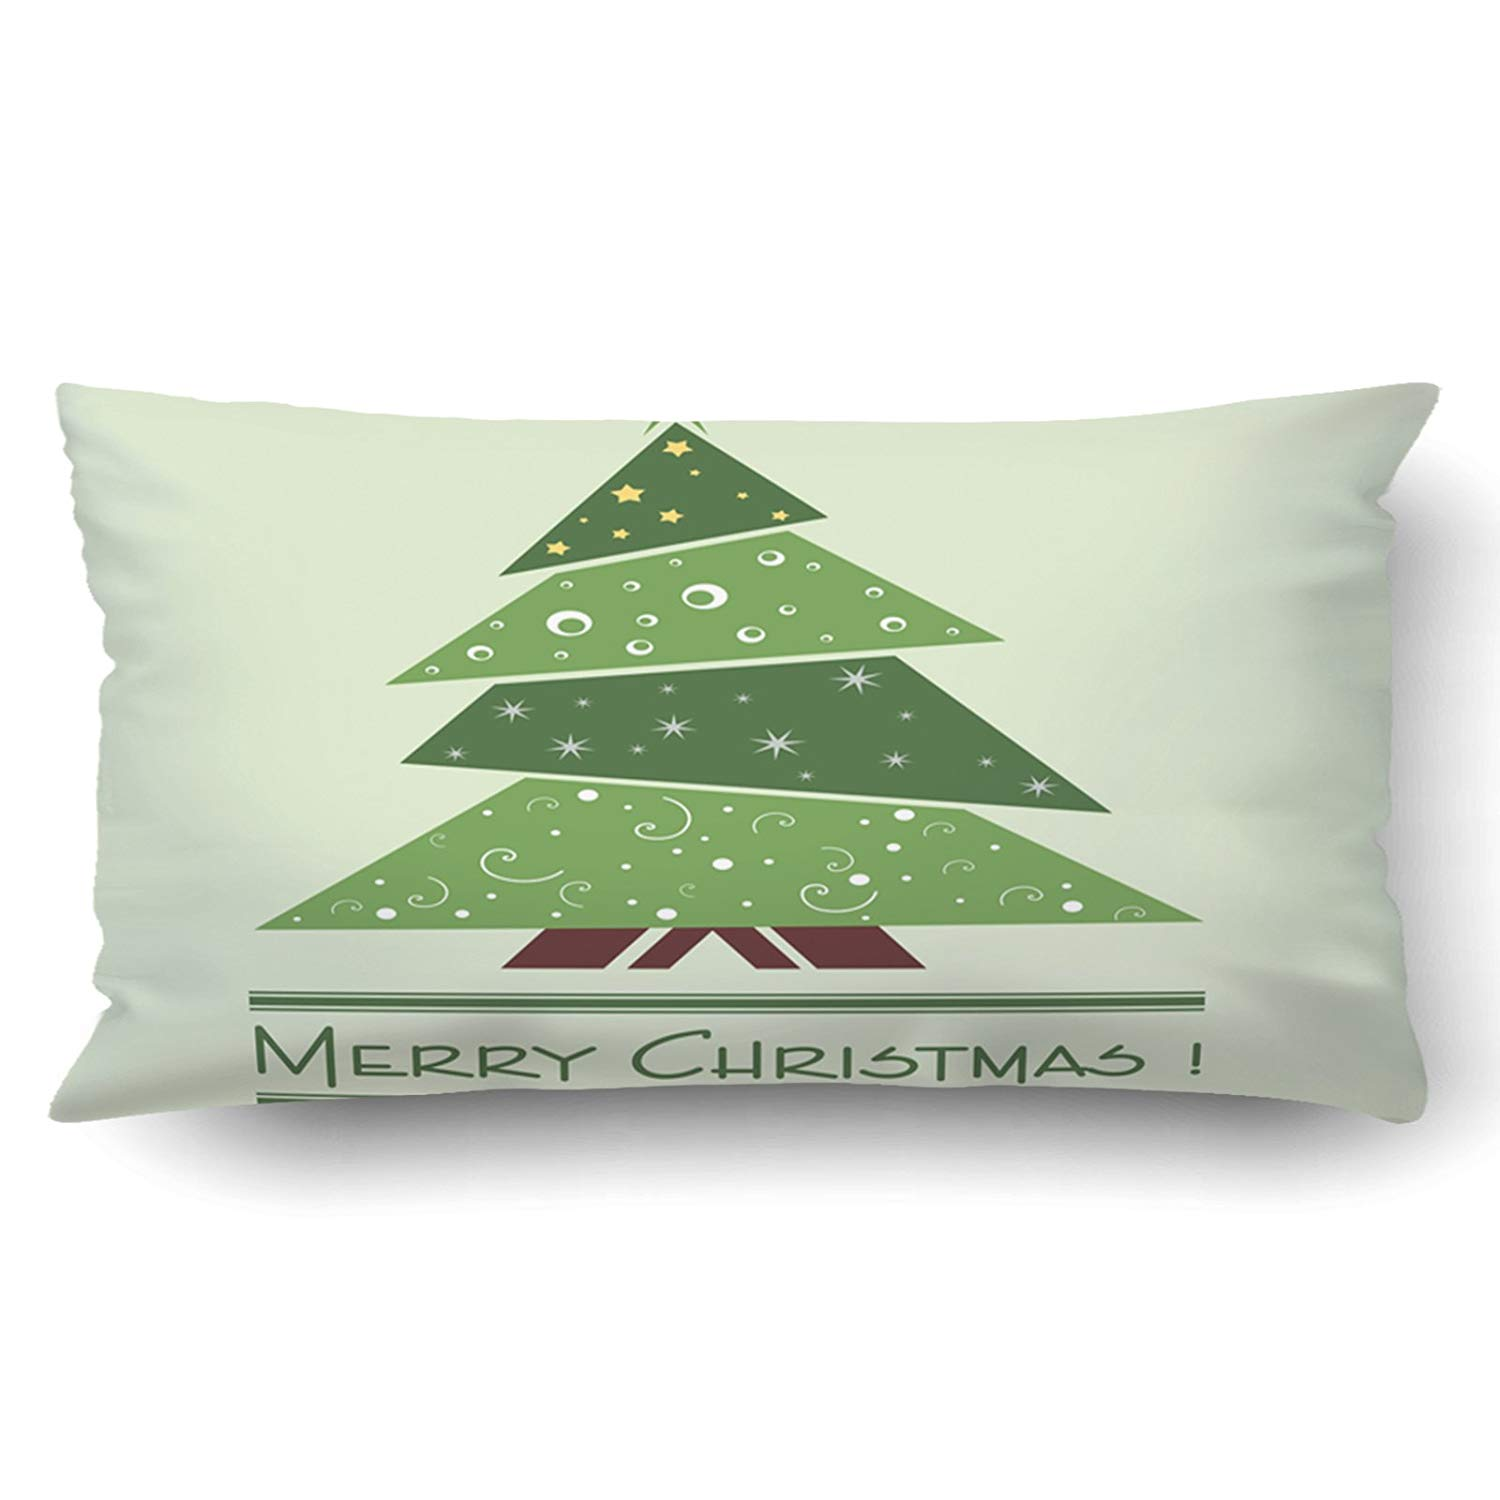 WOPOP Xmas Colorful Illustration With Decorated Green Christmas Tree Christmas Theme Pillow Case Cushion Cover Case Throw Pillow Case 20x30 inches